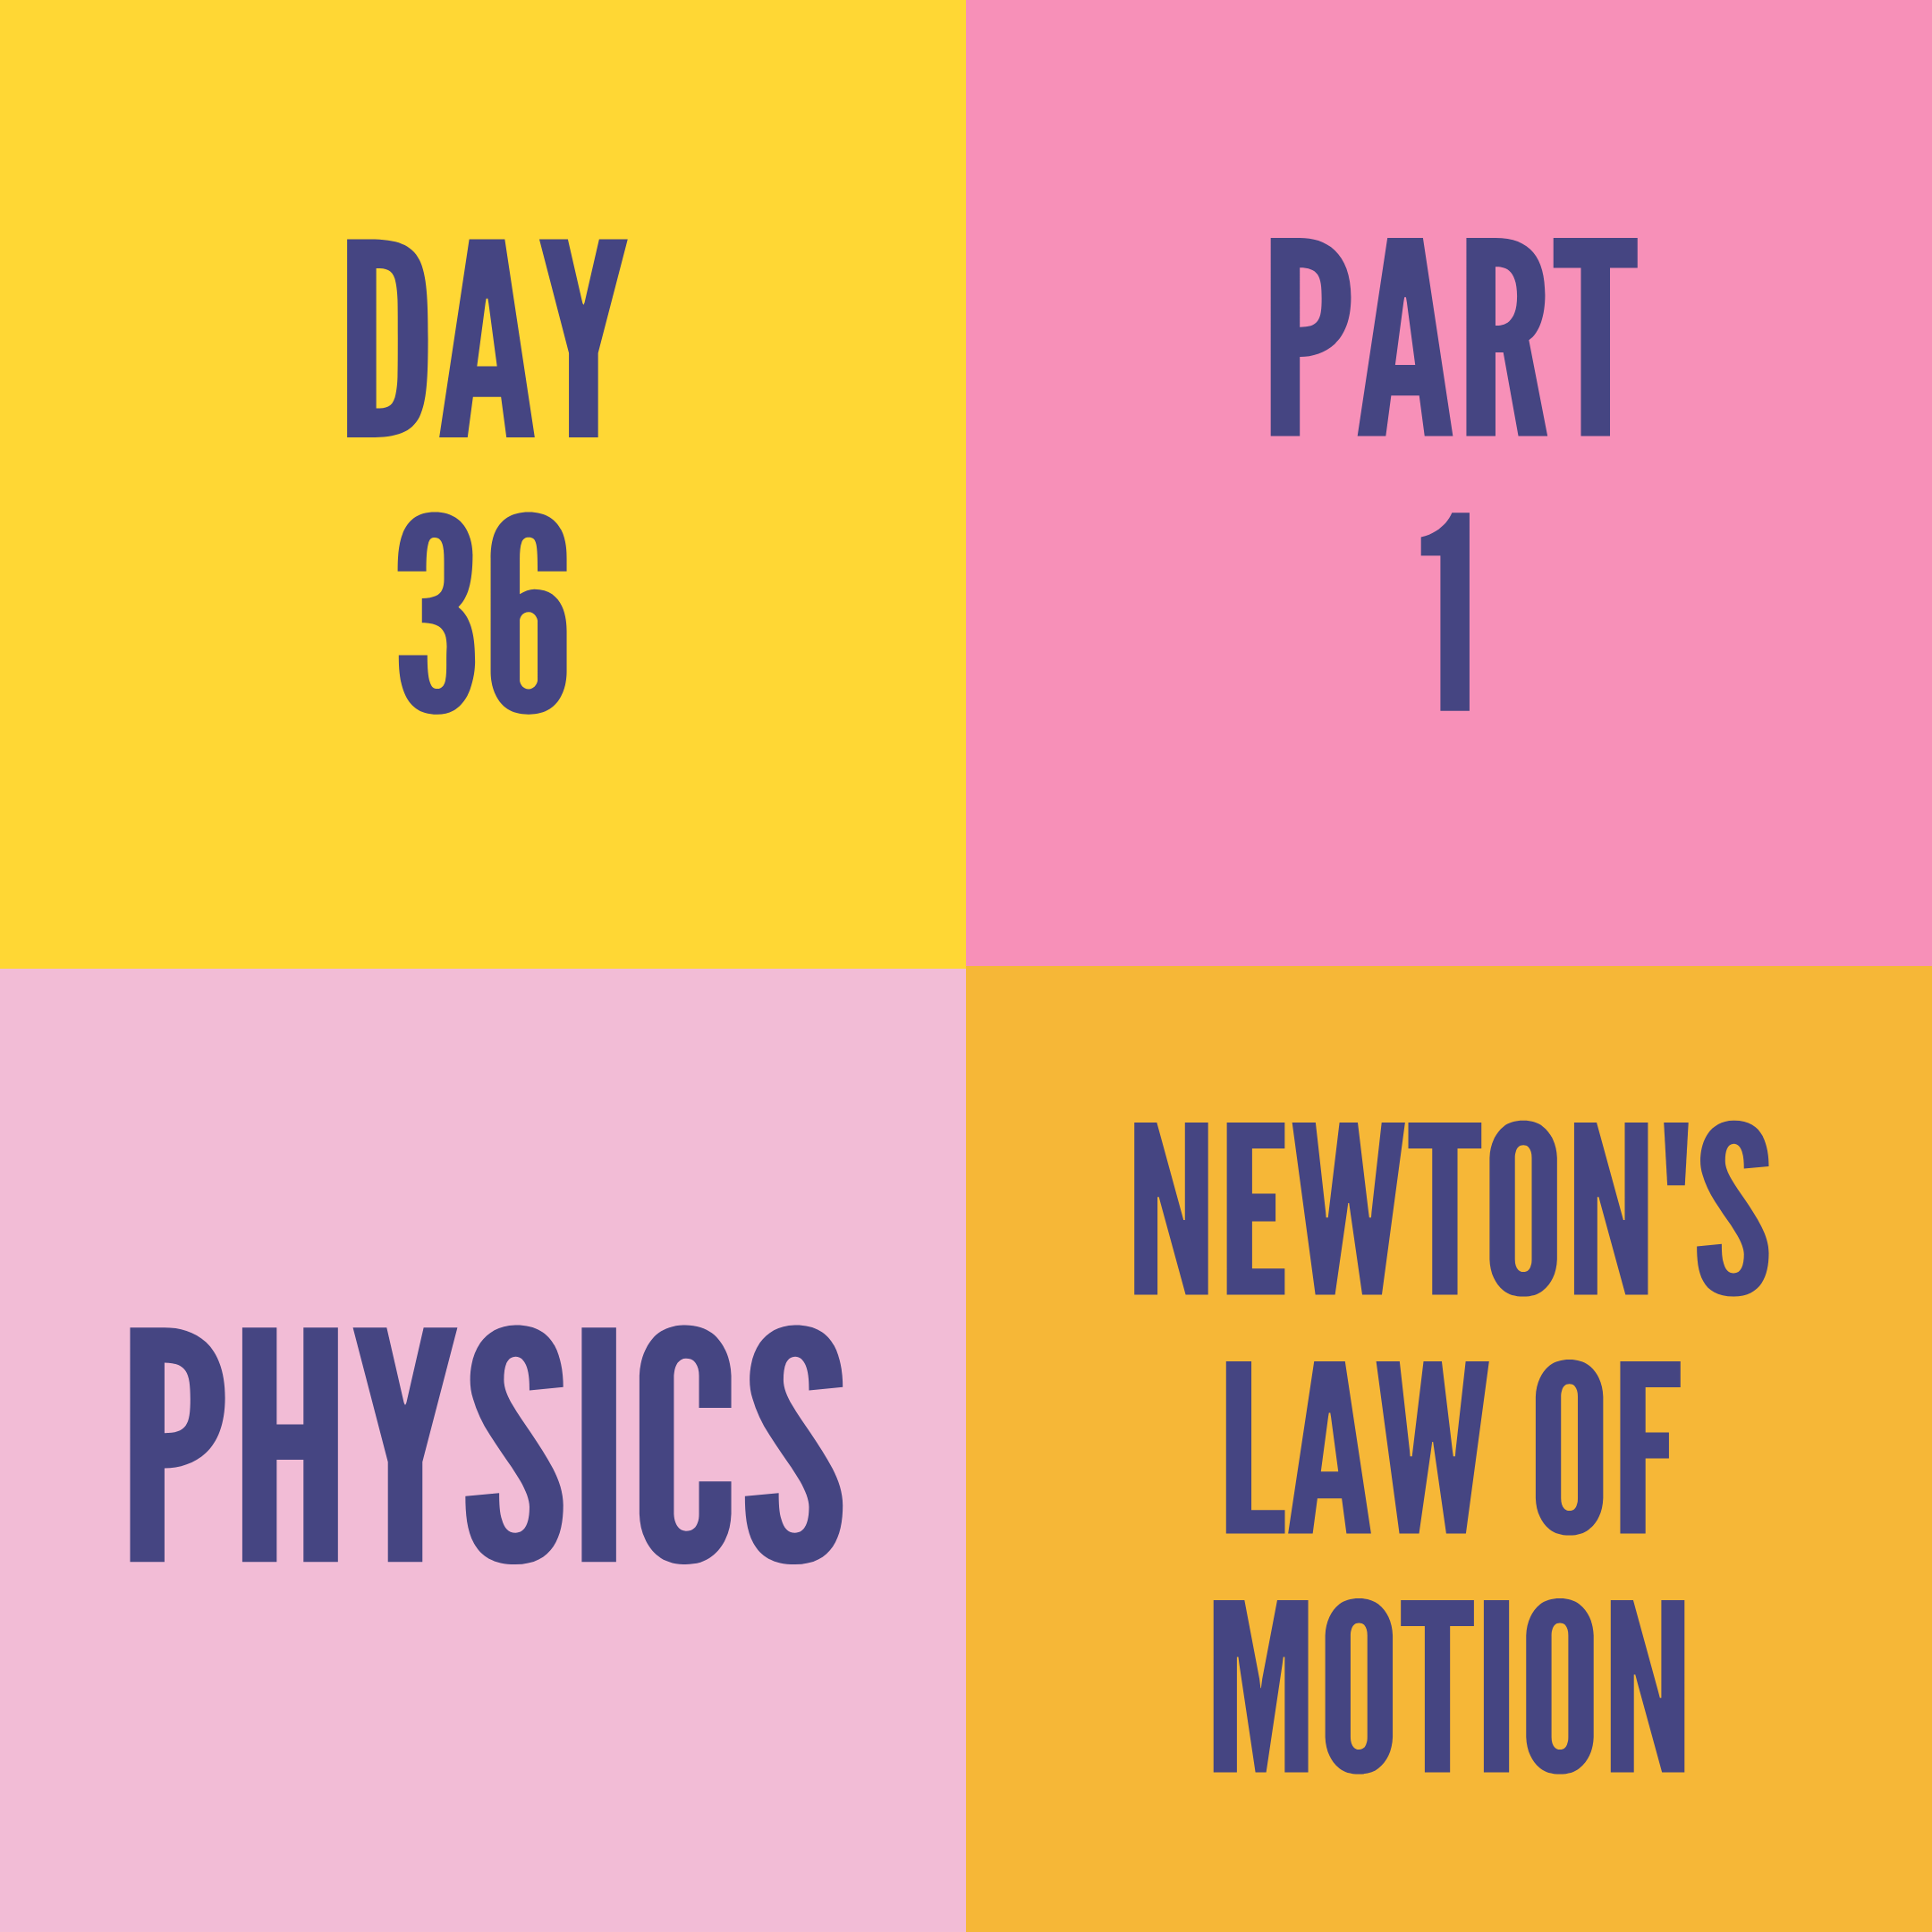 DAY-36 PART-1 NEWTON'S LAW OF MOTION